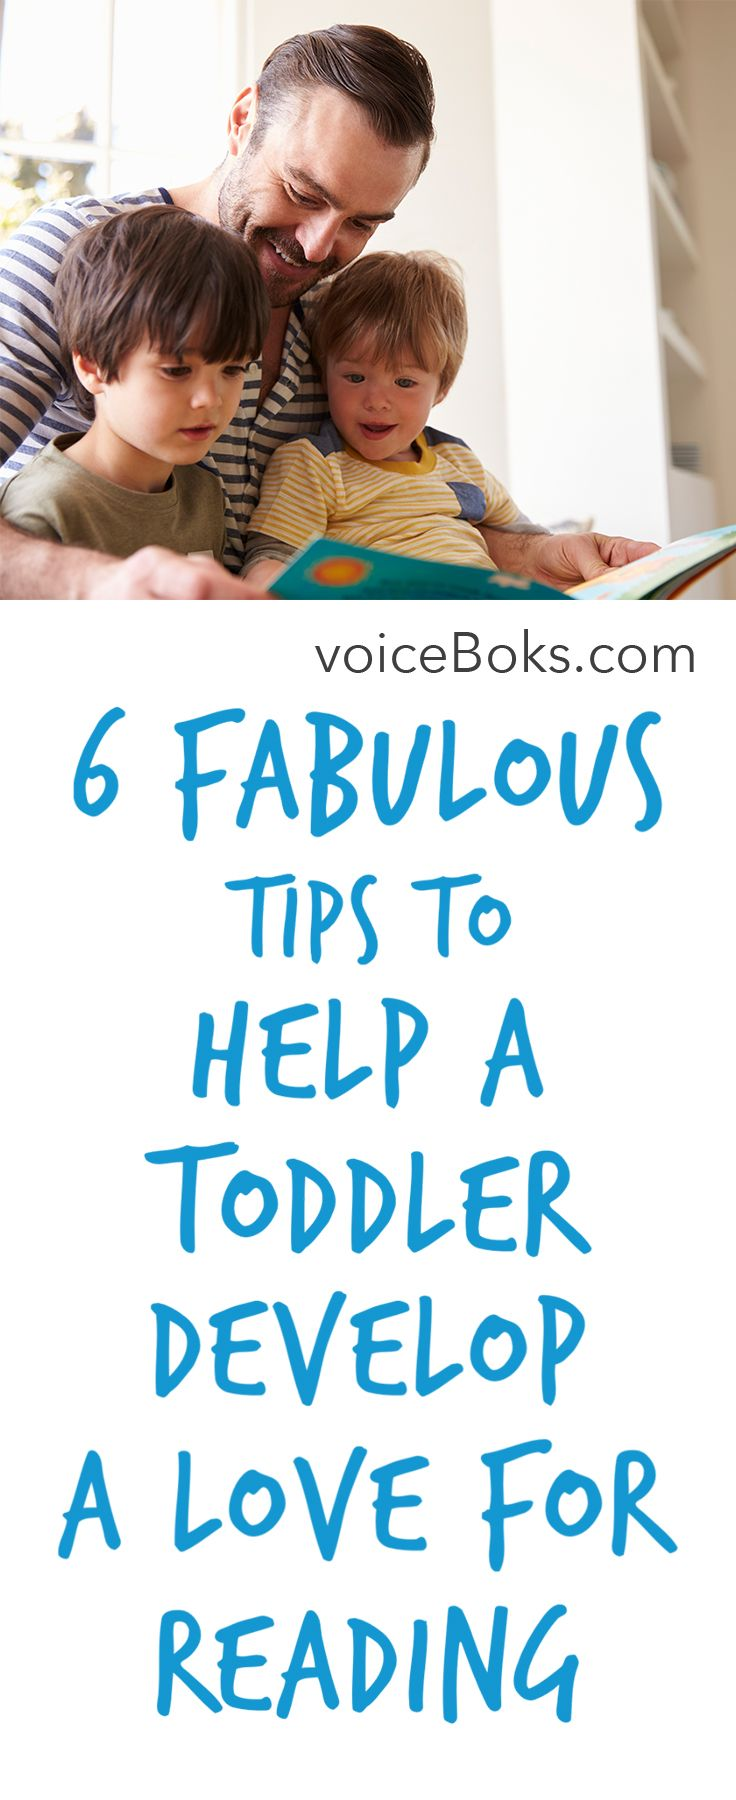 Tips to help a toddler develop reading interests